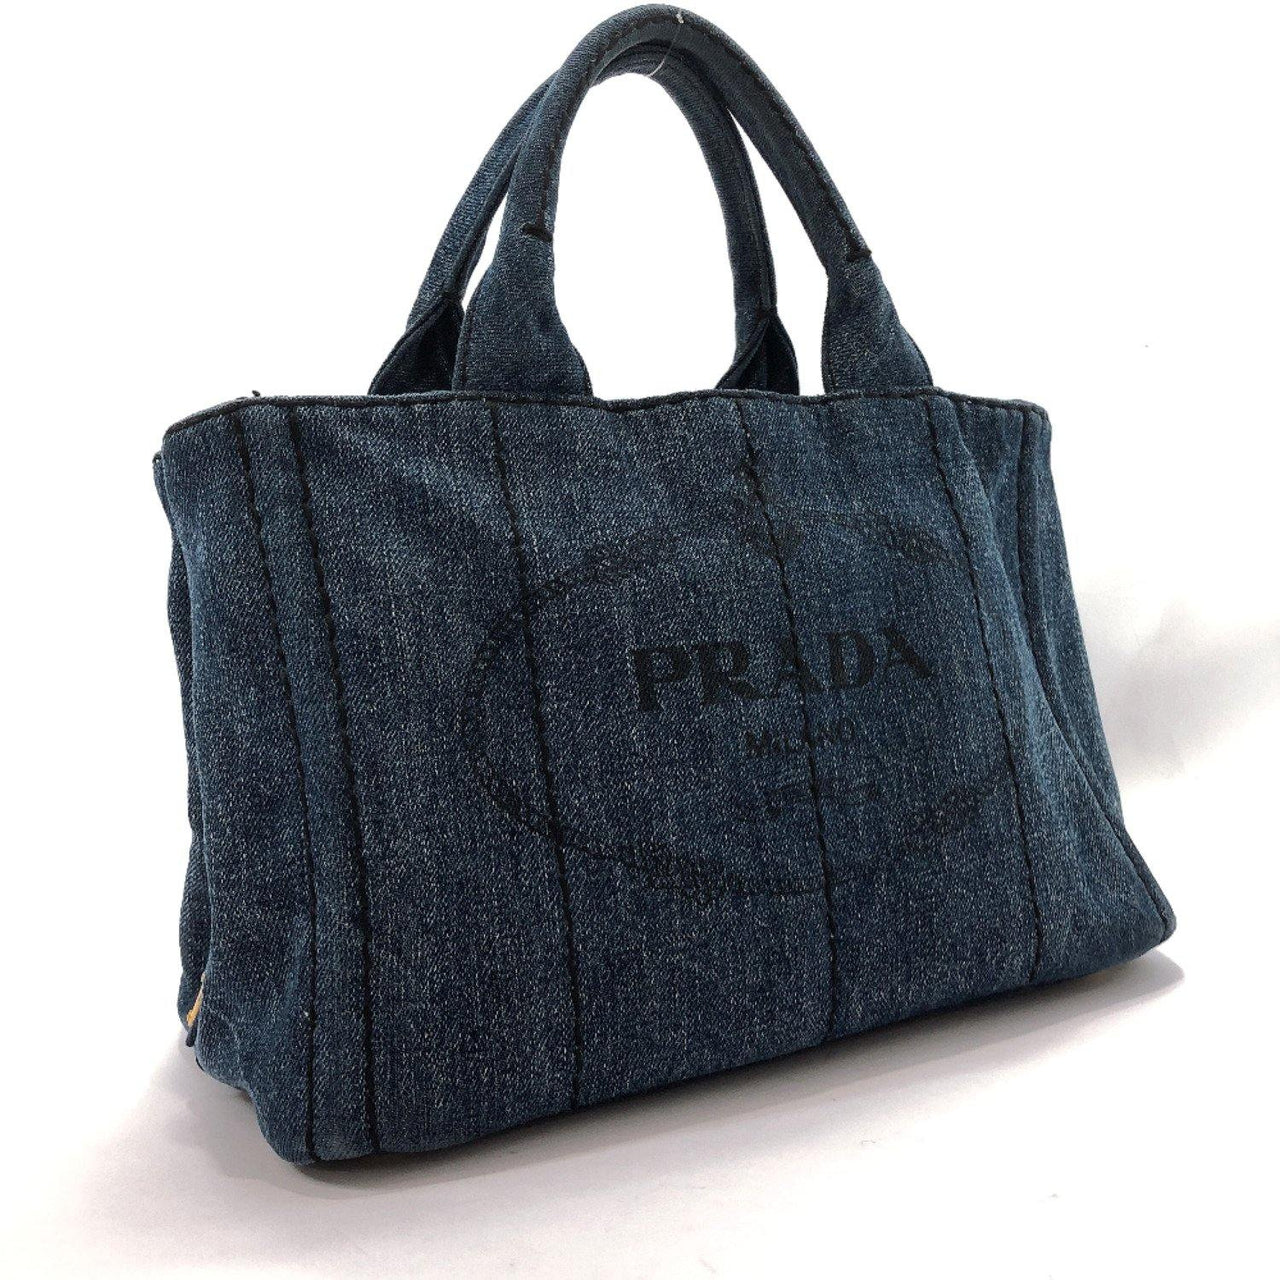 PRADA Tote Bag Canapa mini denim Denim blue Women Used - JP-BRANDS.com